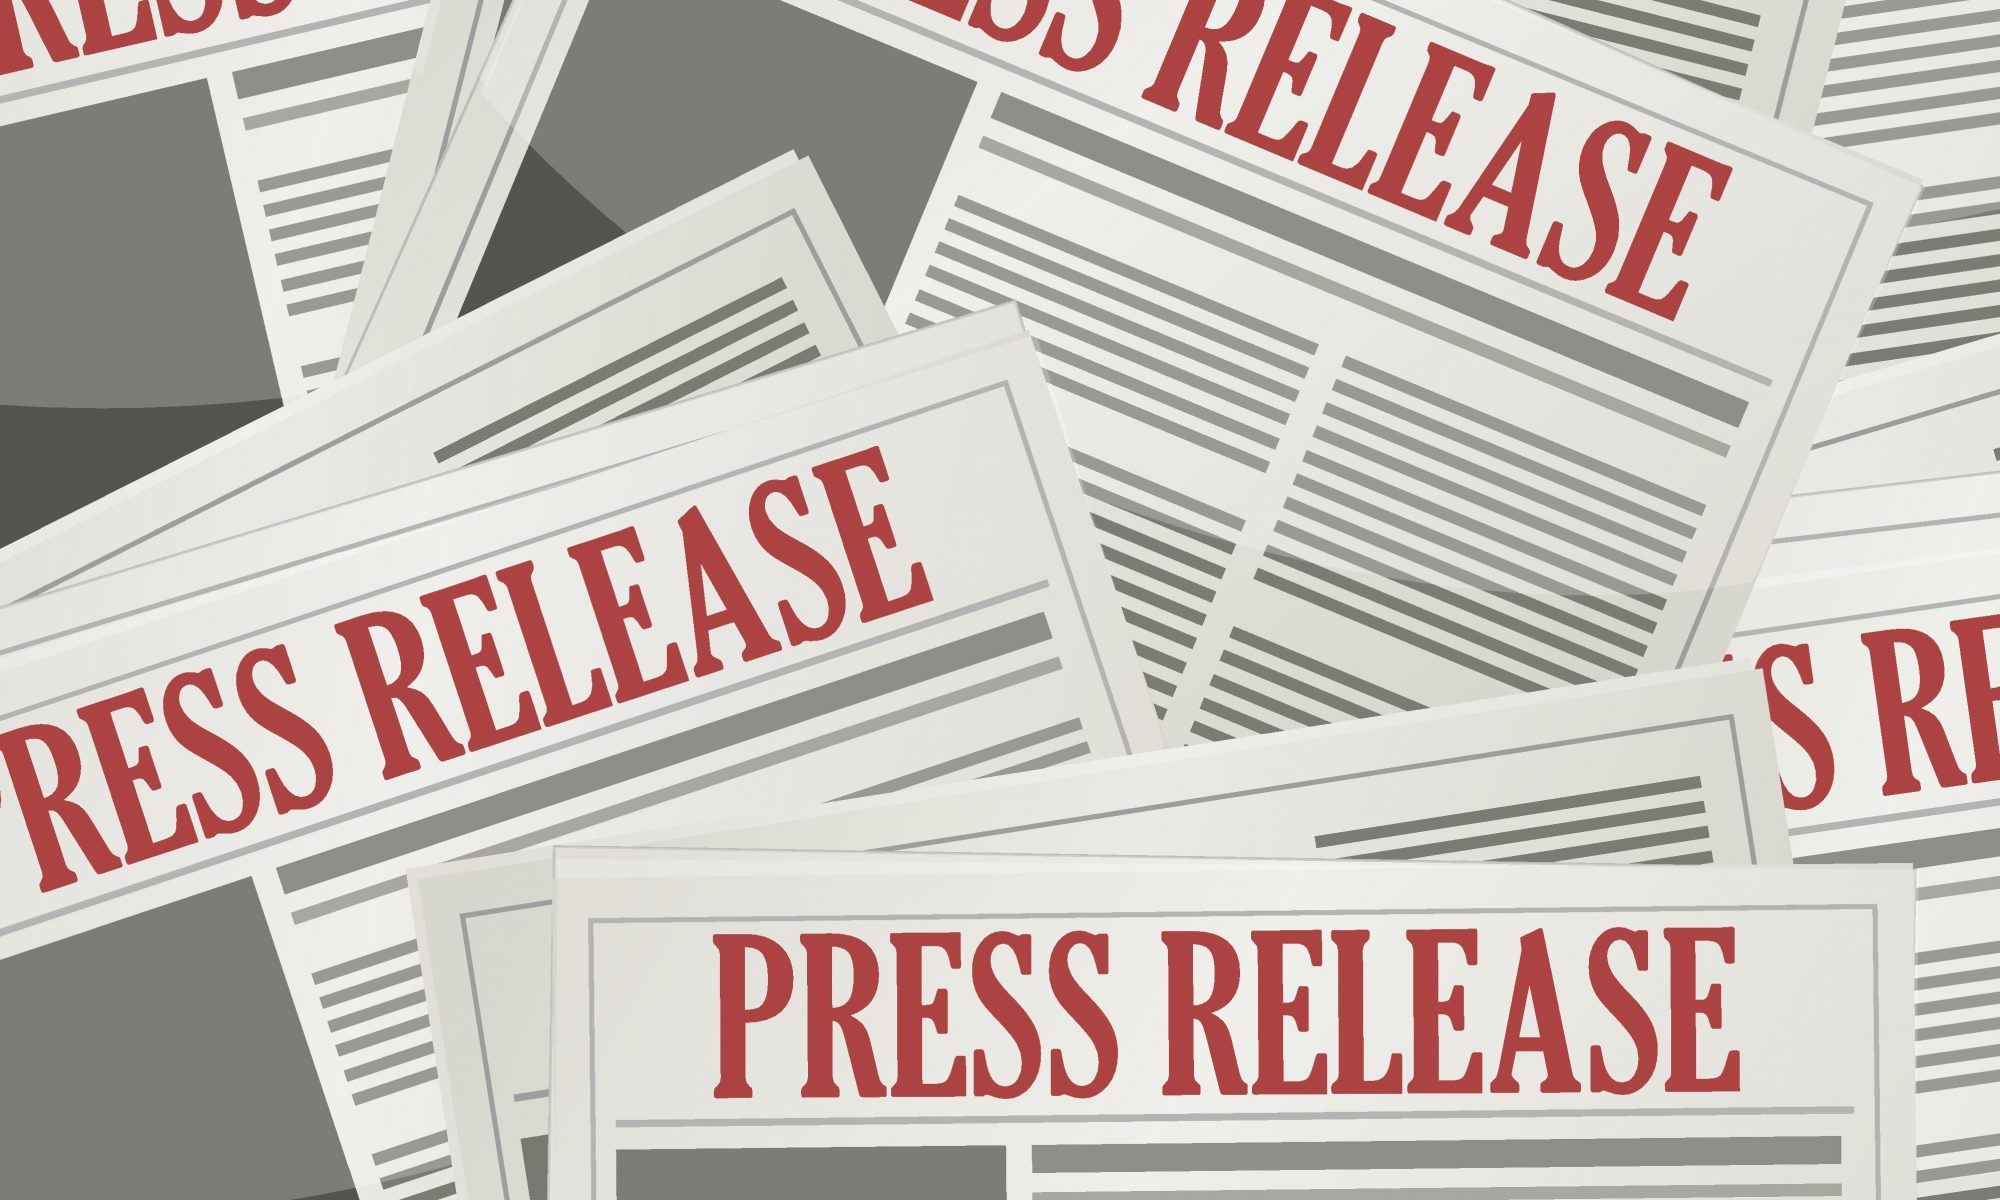 How to Do a Press Release